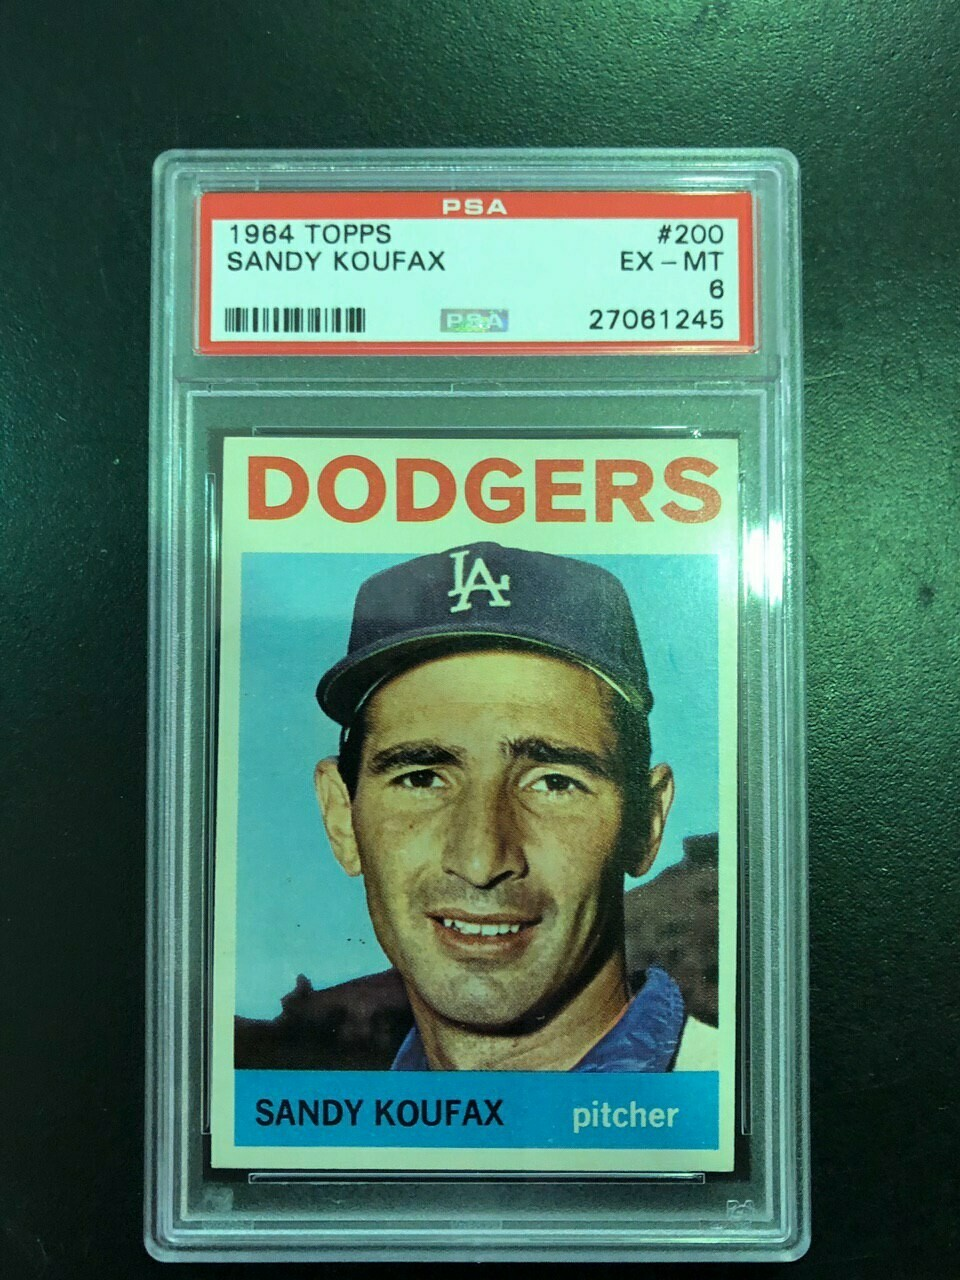 1964 Topps #200 Sandy Koufax PSA graded 6, $120